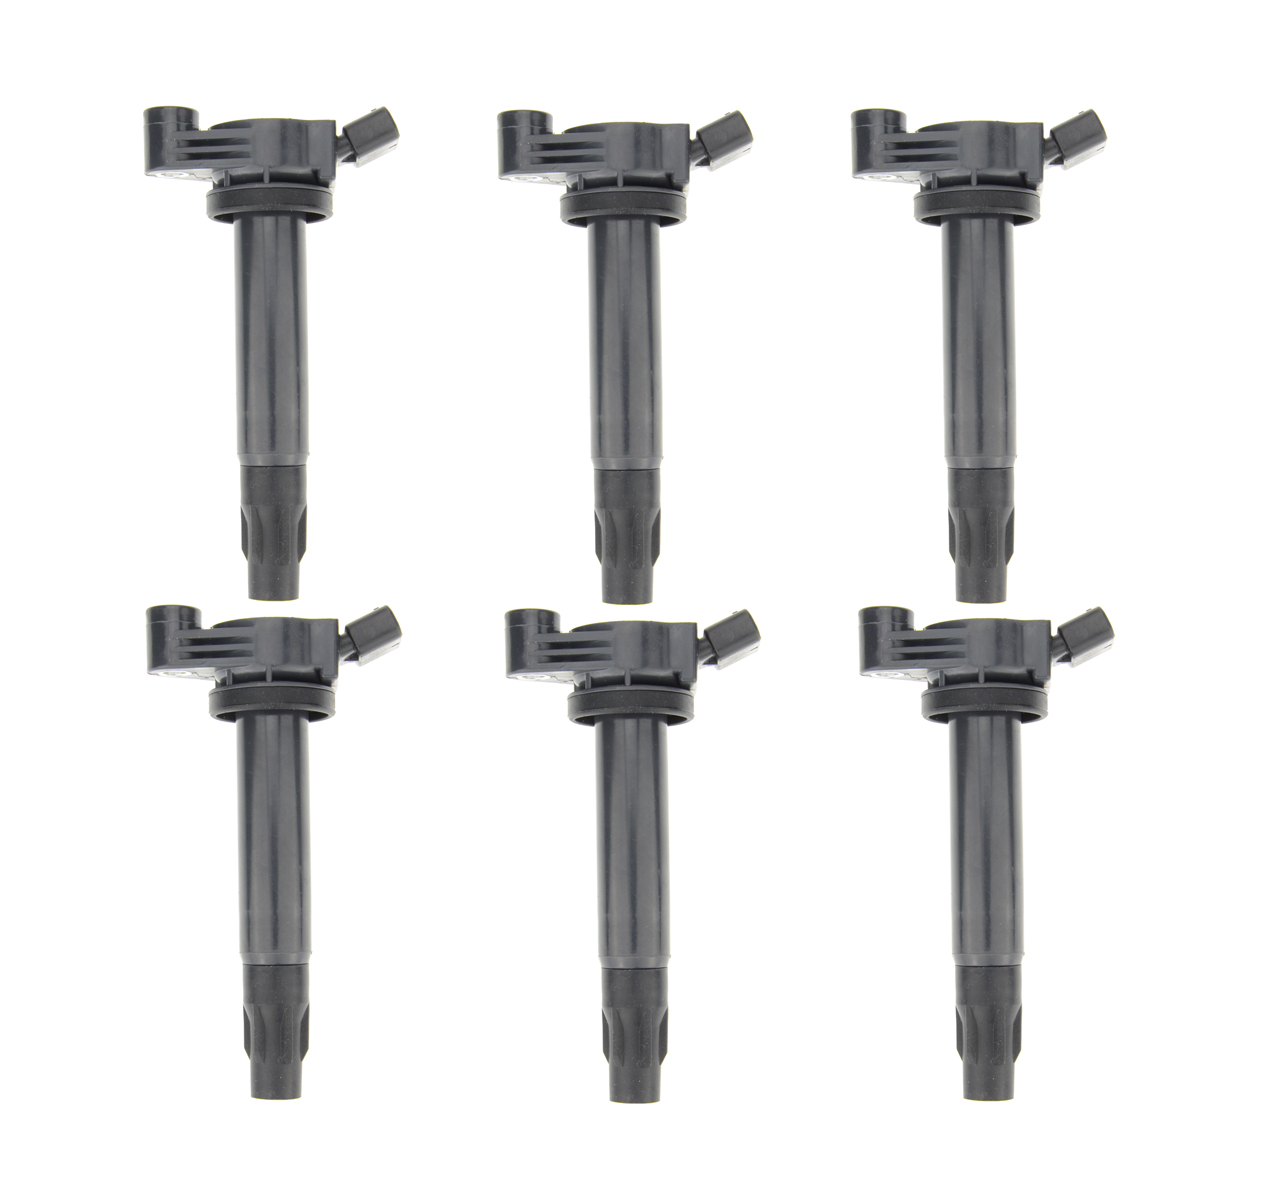 Set Of 6pcs Ignition Coils For Toyota Kluger Lexus Rx330